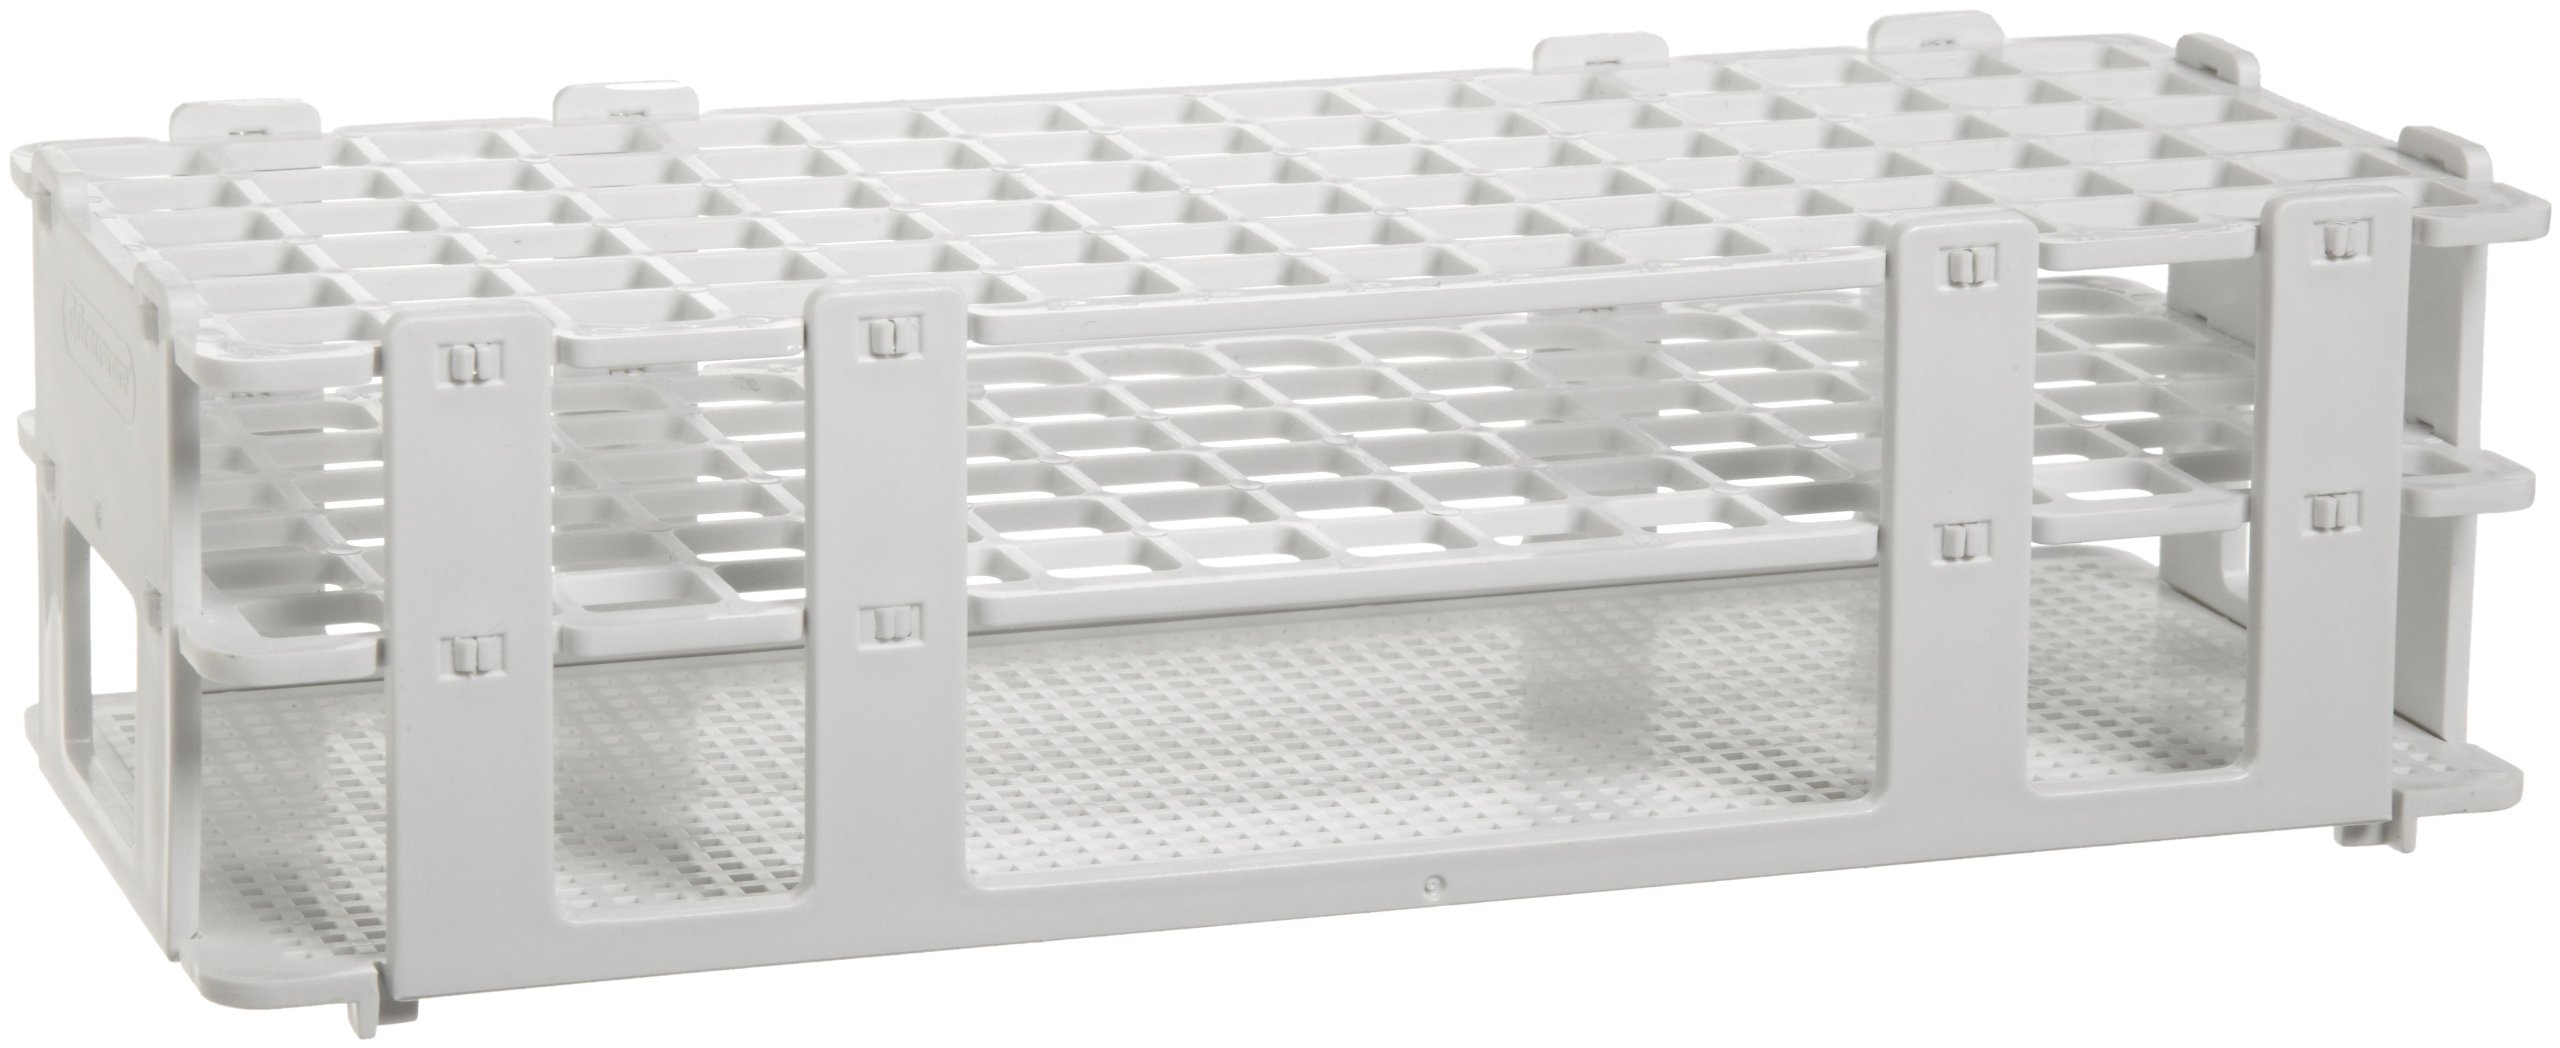 Bel-Art F18745-0000 No-Wire Test Tube Rack; 10-13mm, 90 Places, 9.7 x 4.1 x 2.5 in., Polypropylene, White